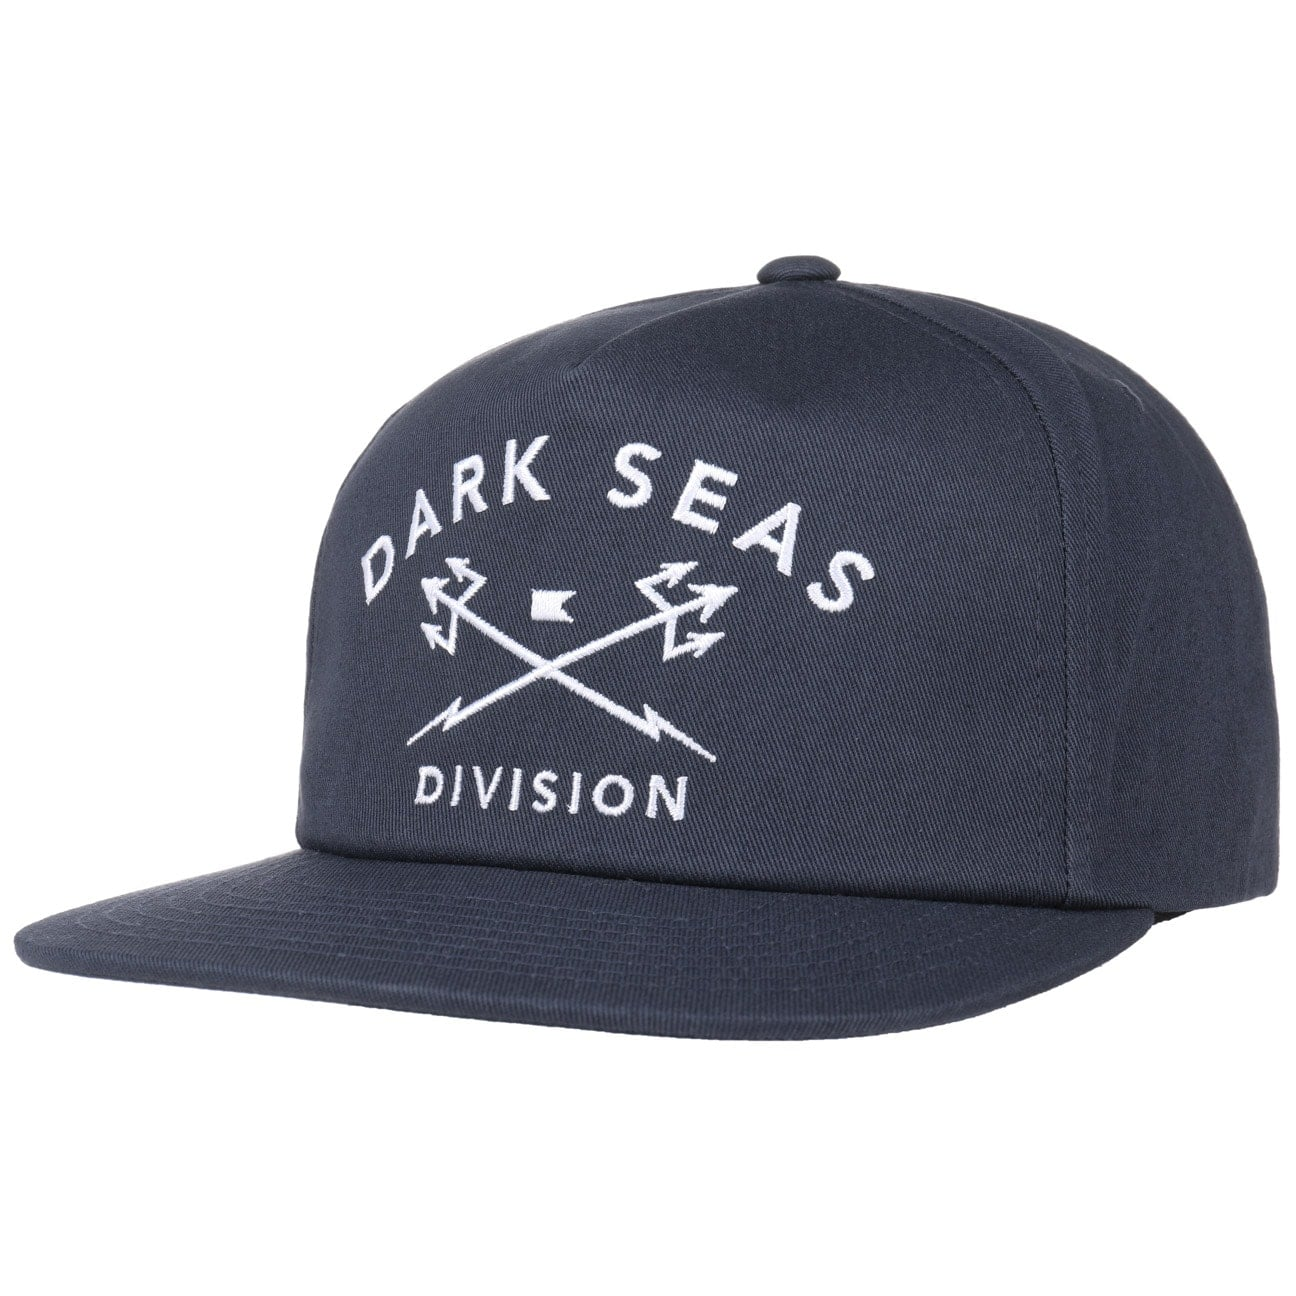 Gorra Tridents Snapback by Dark Seas  gorra de baseball